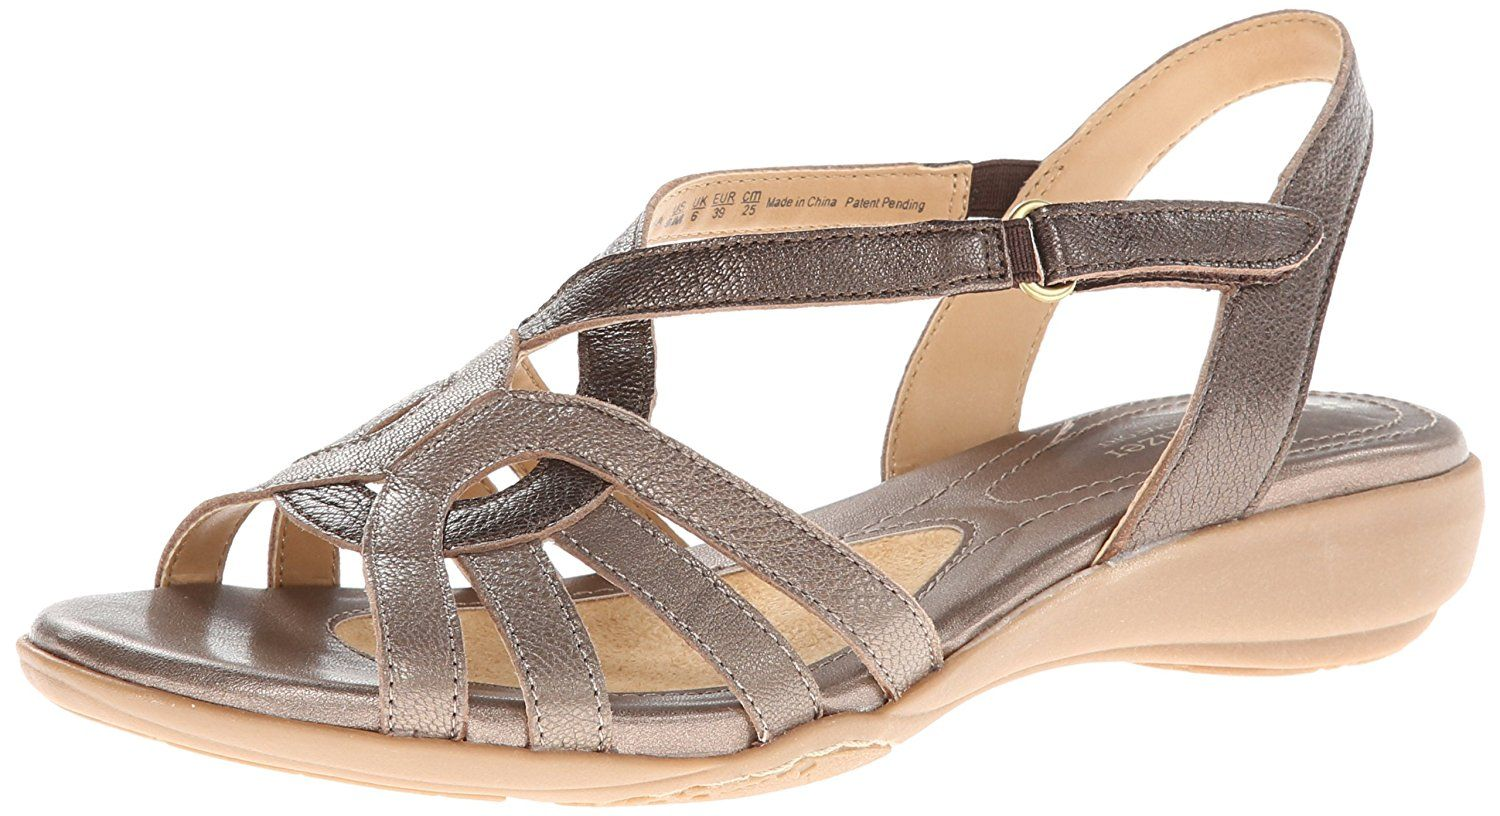 f3867e2b33c3 Naturalizer Women s Catrina Huarache Sandal    Special product just for  you. See it now!   Naturalizer sandals